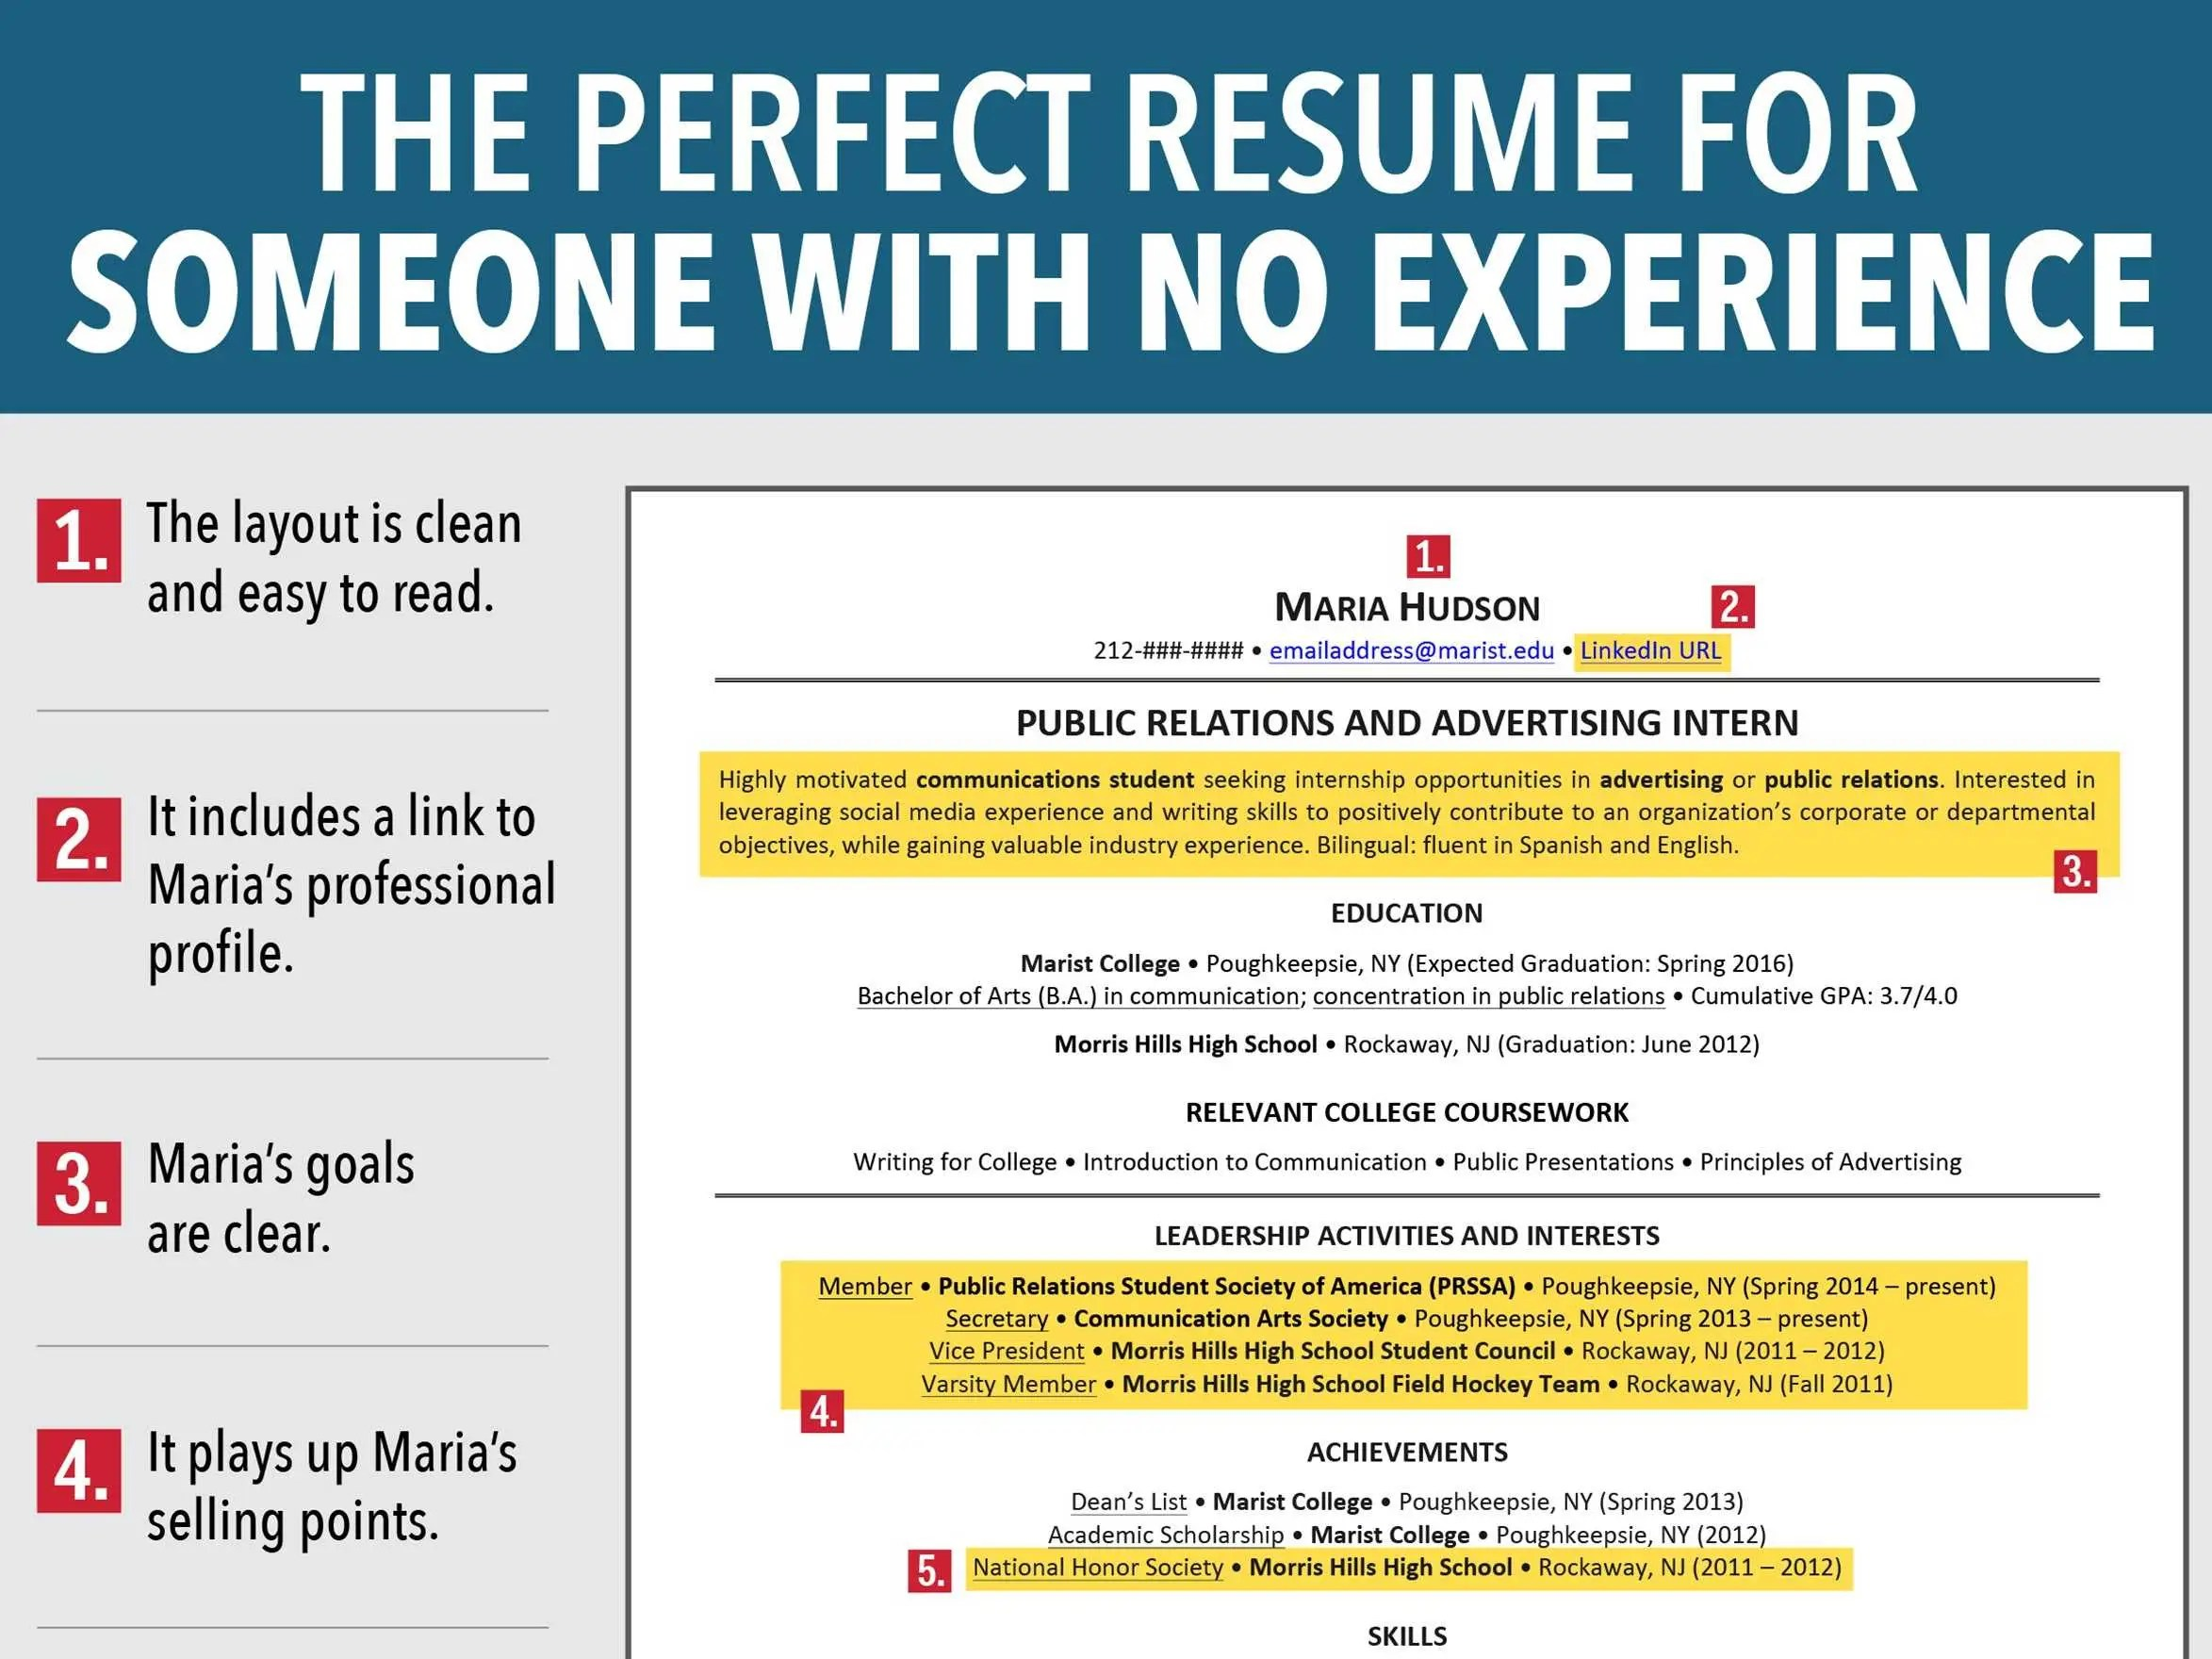 How To Write A Resume For Students With No Experience Resume For Job Seeker With No Experience Business Insider